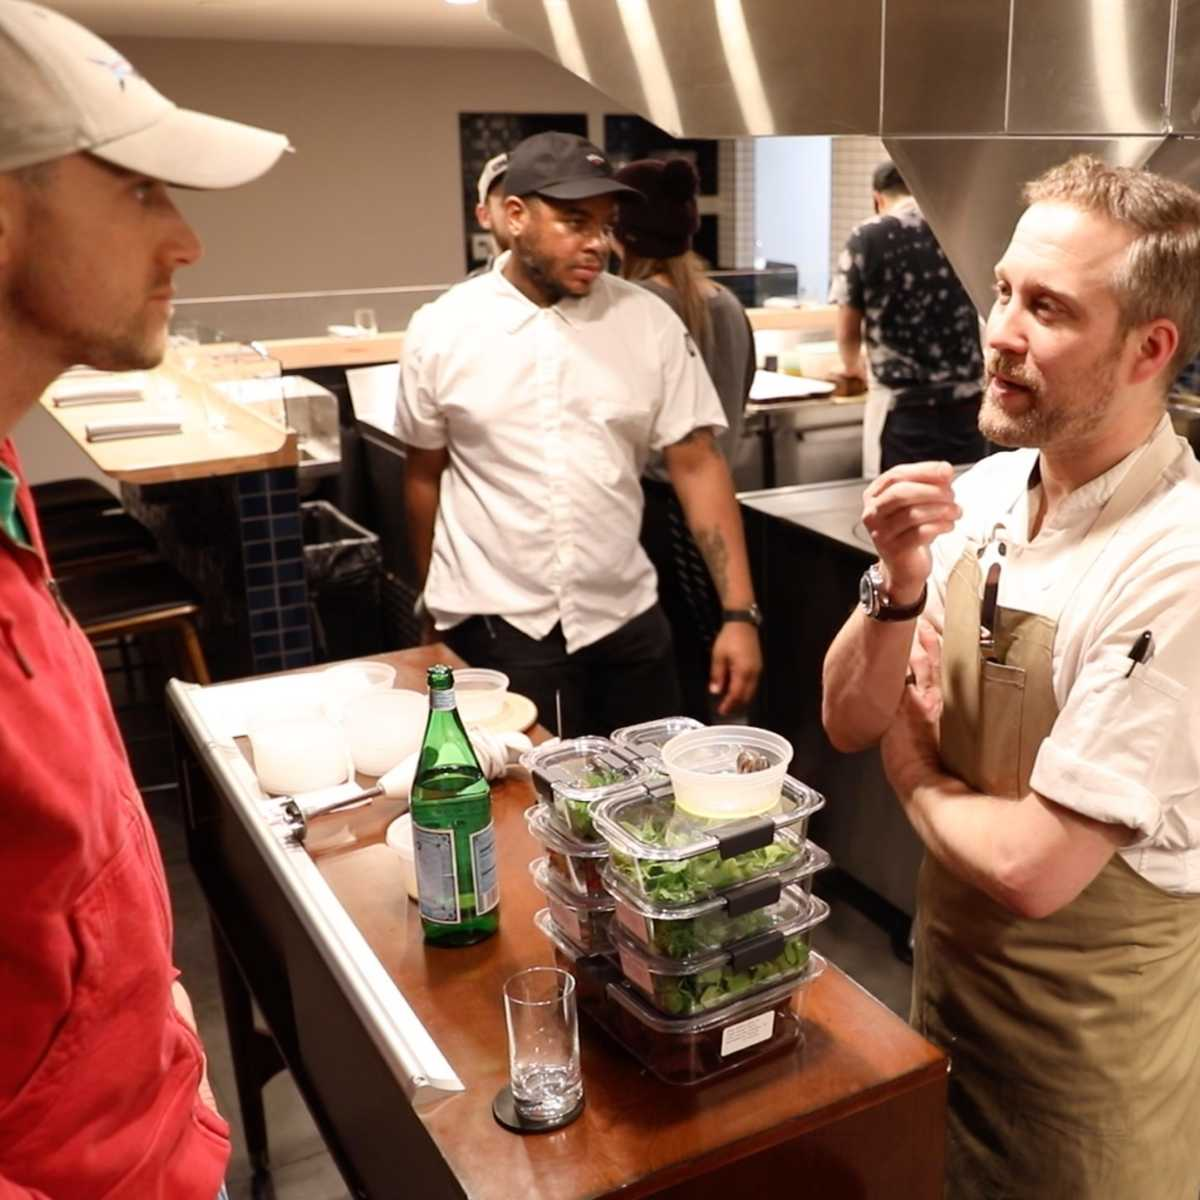 Selling microgreens to chefs.